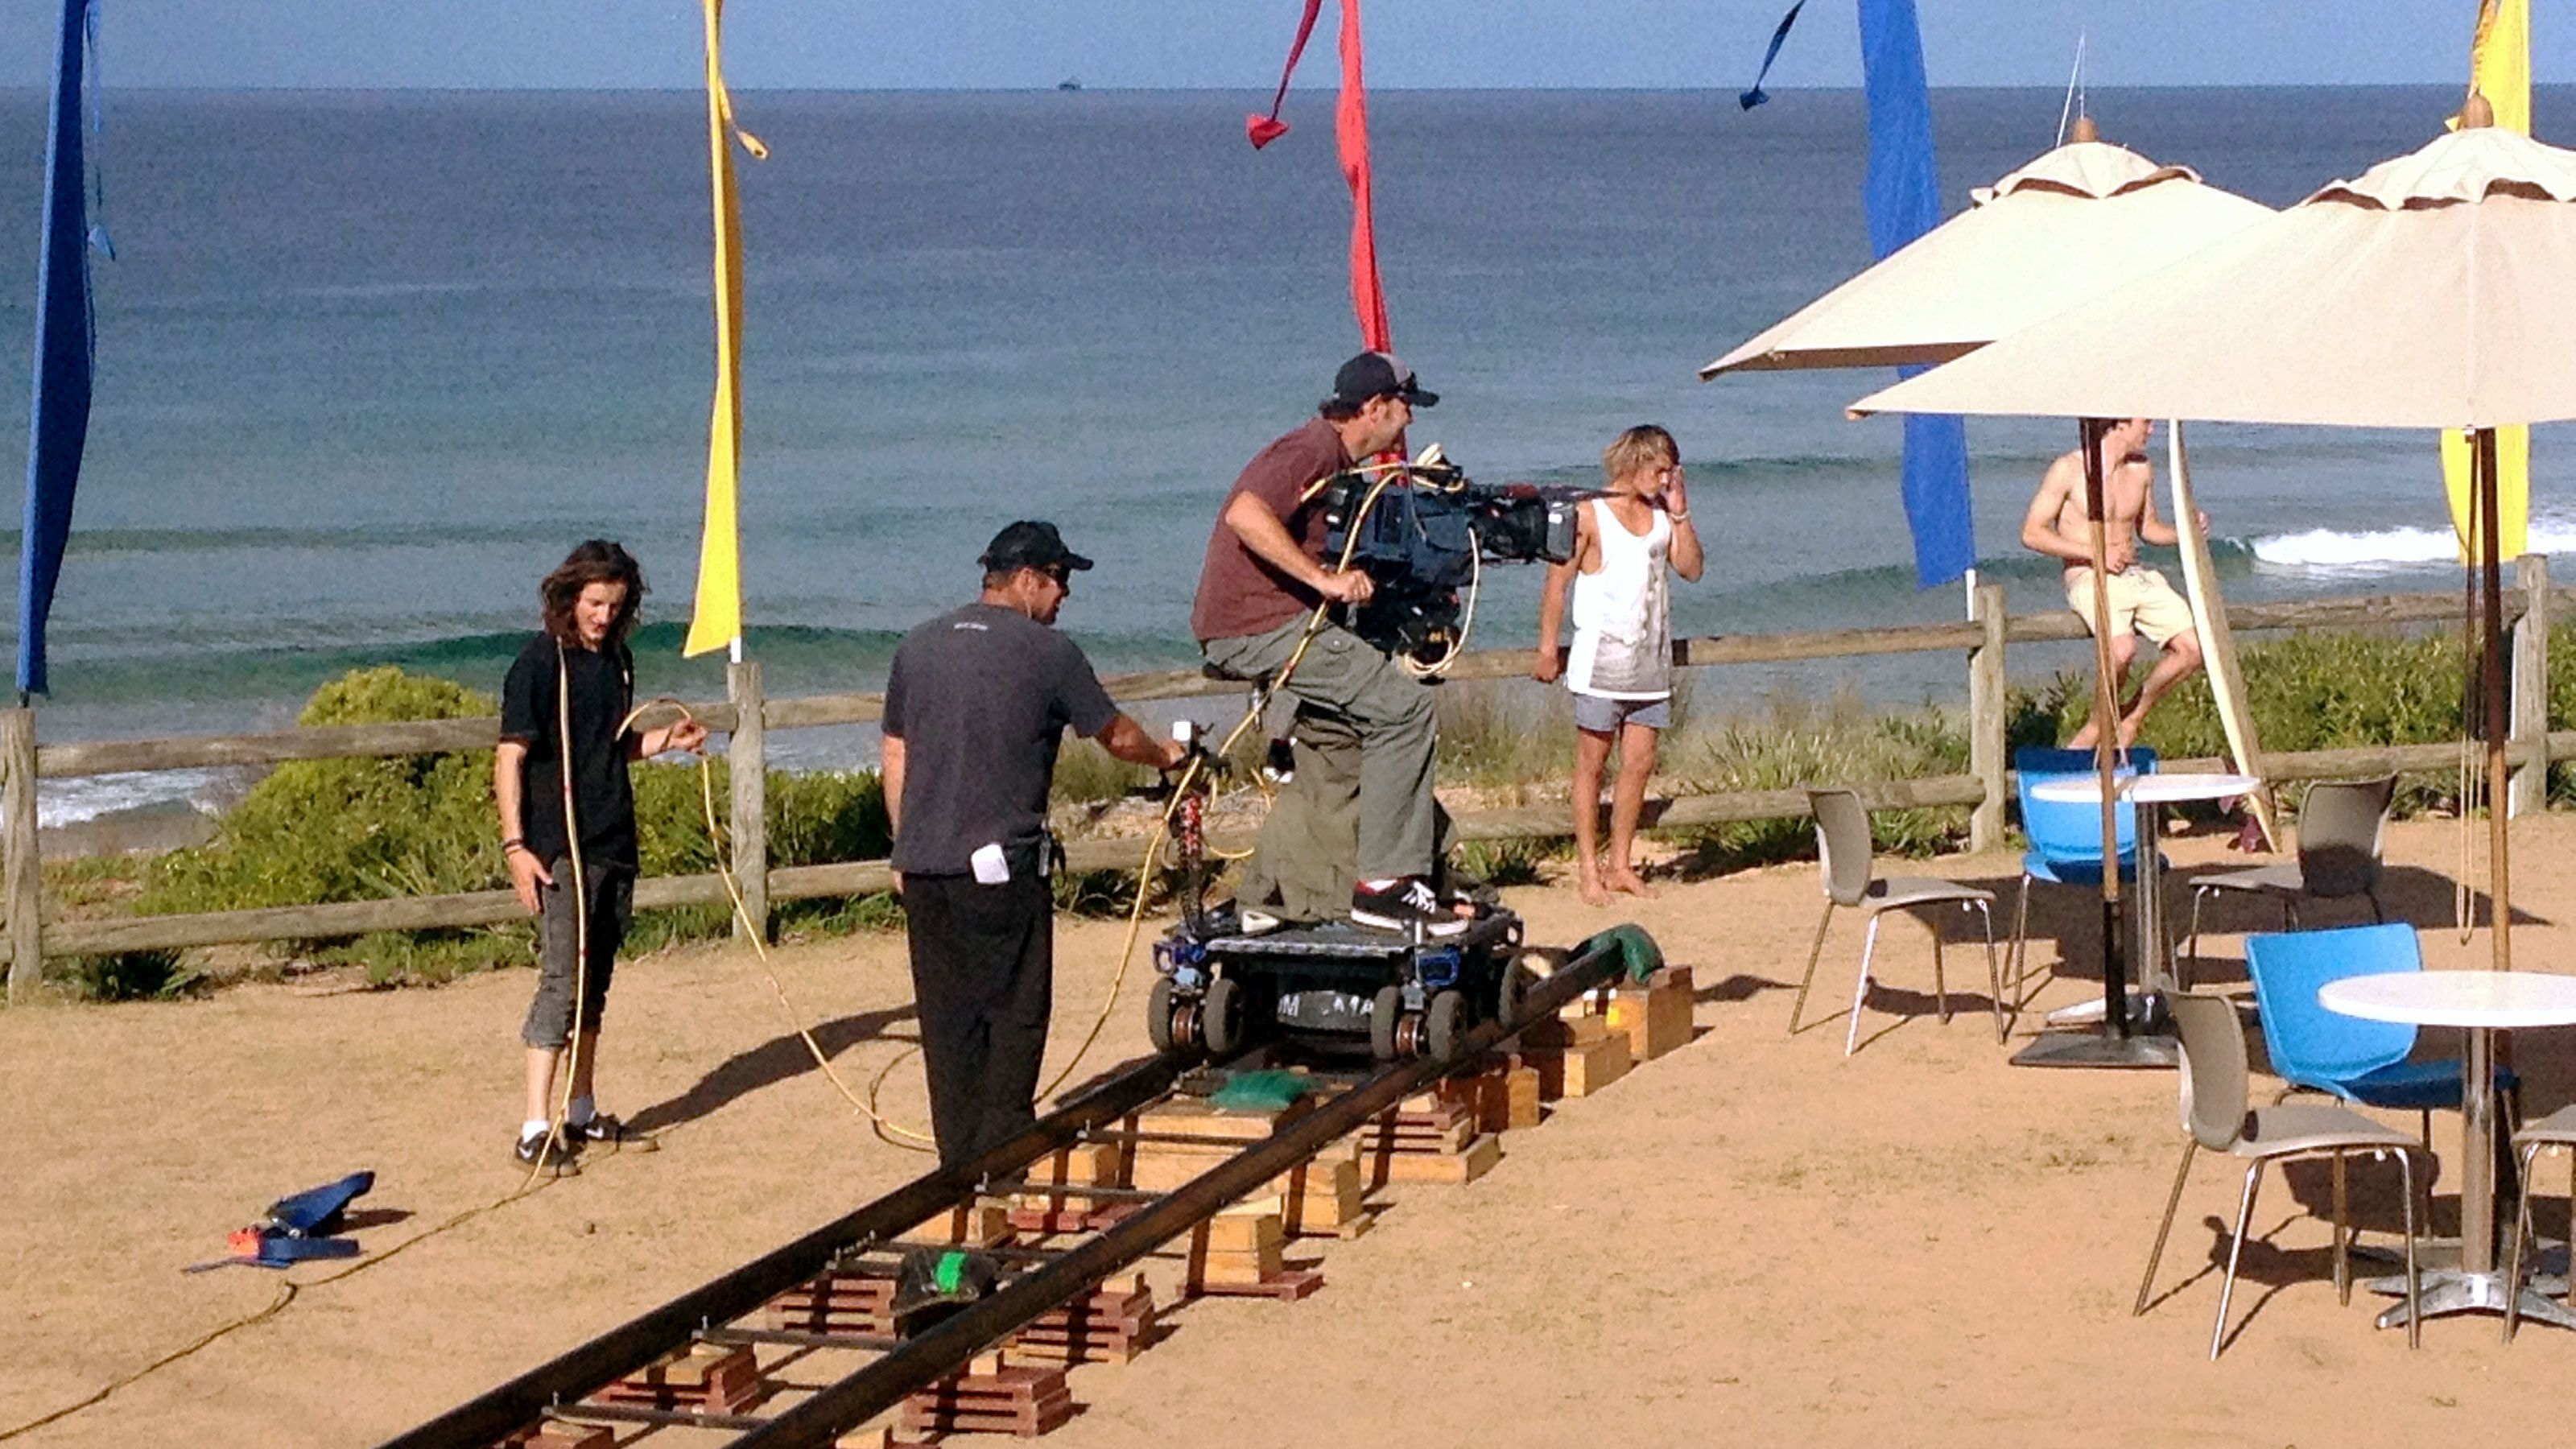 On site view of the filming location of famous TV show Home and Away in Australia